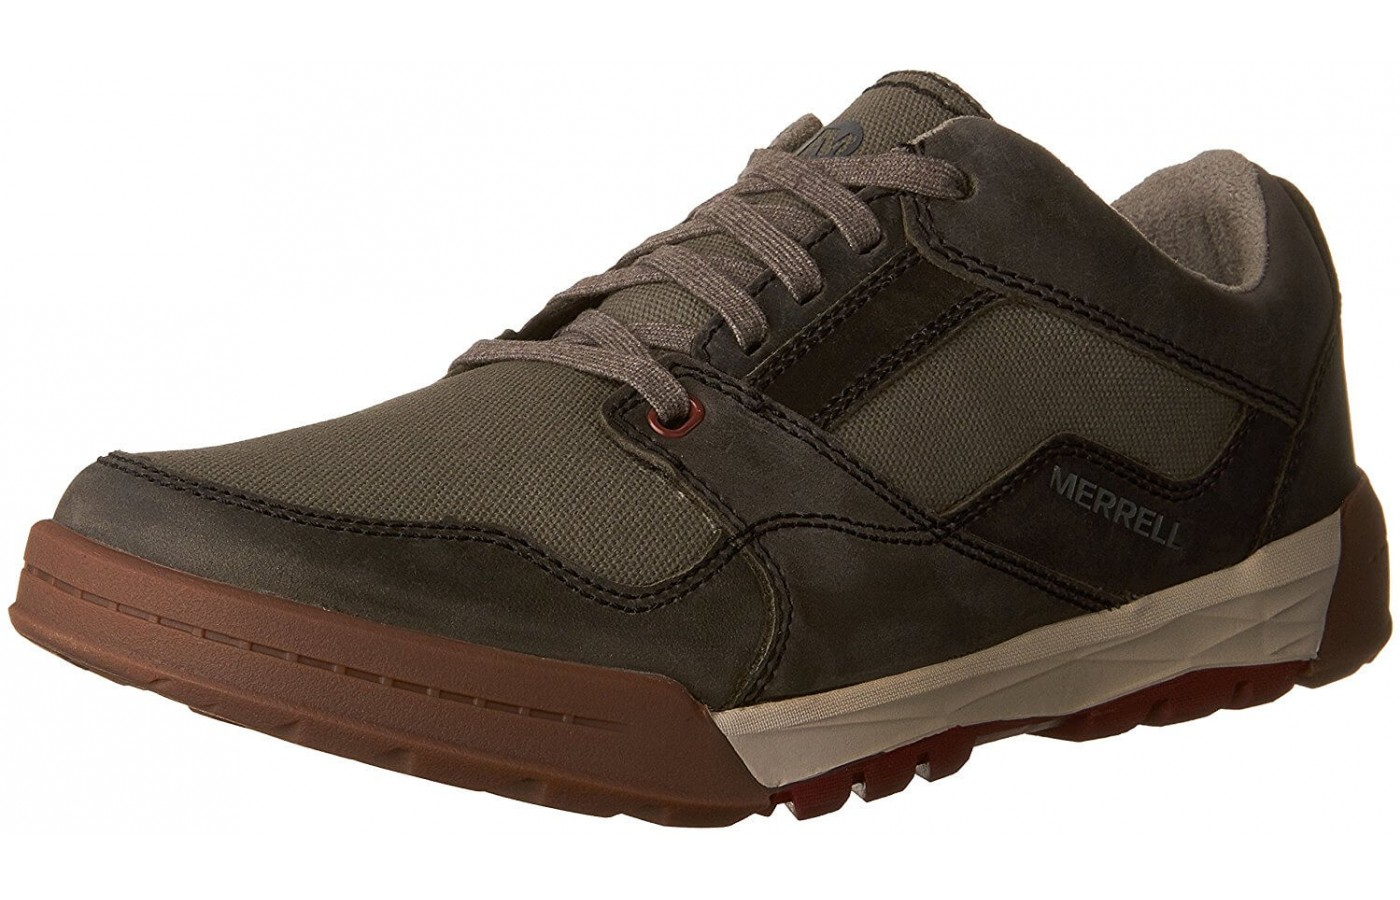 The Merrell Berner Shift Lace features an M Select Move midsole design